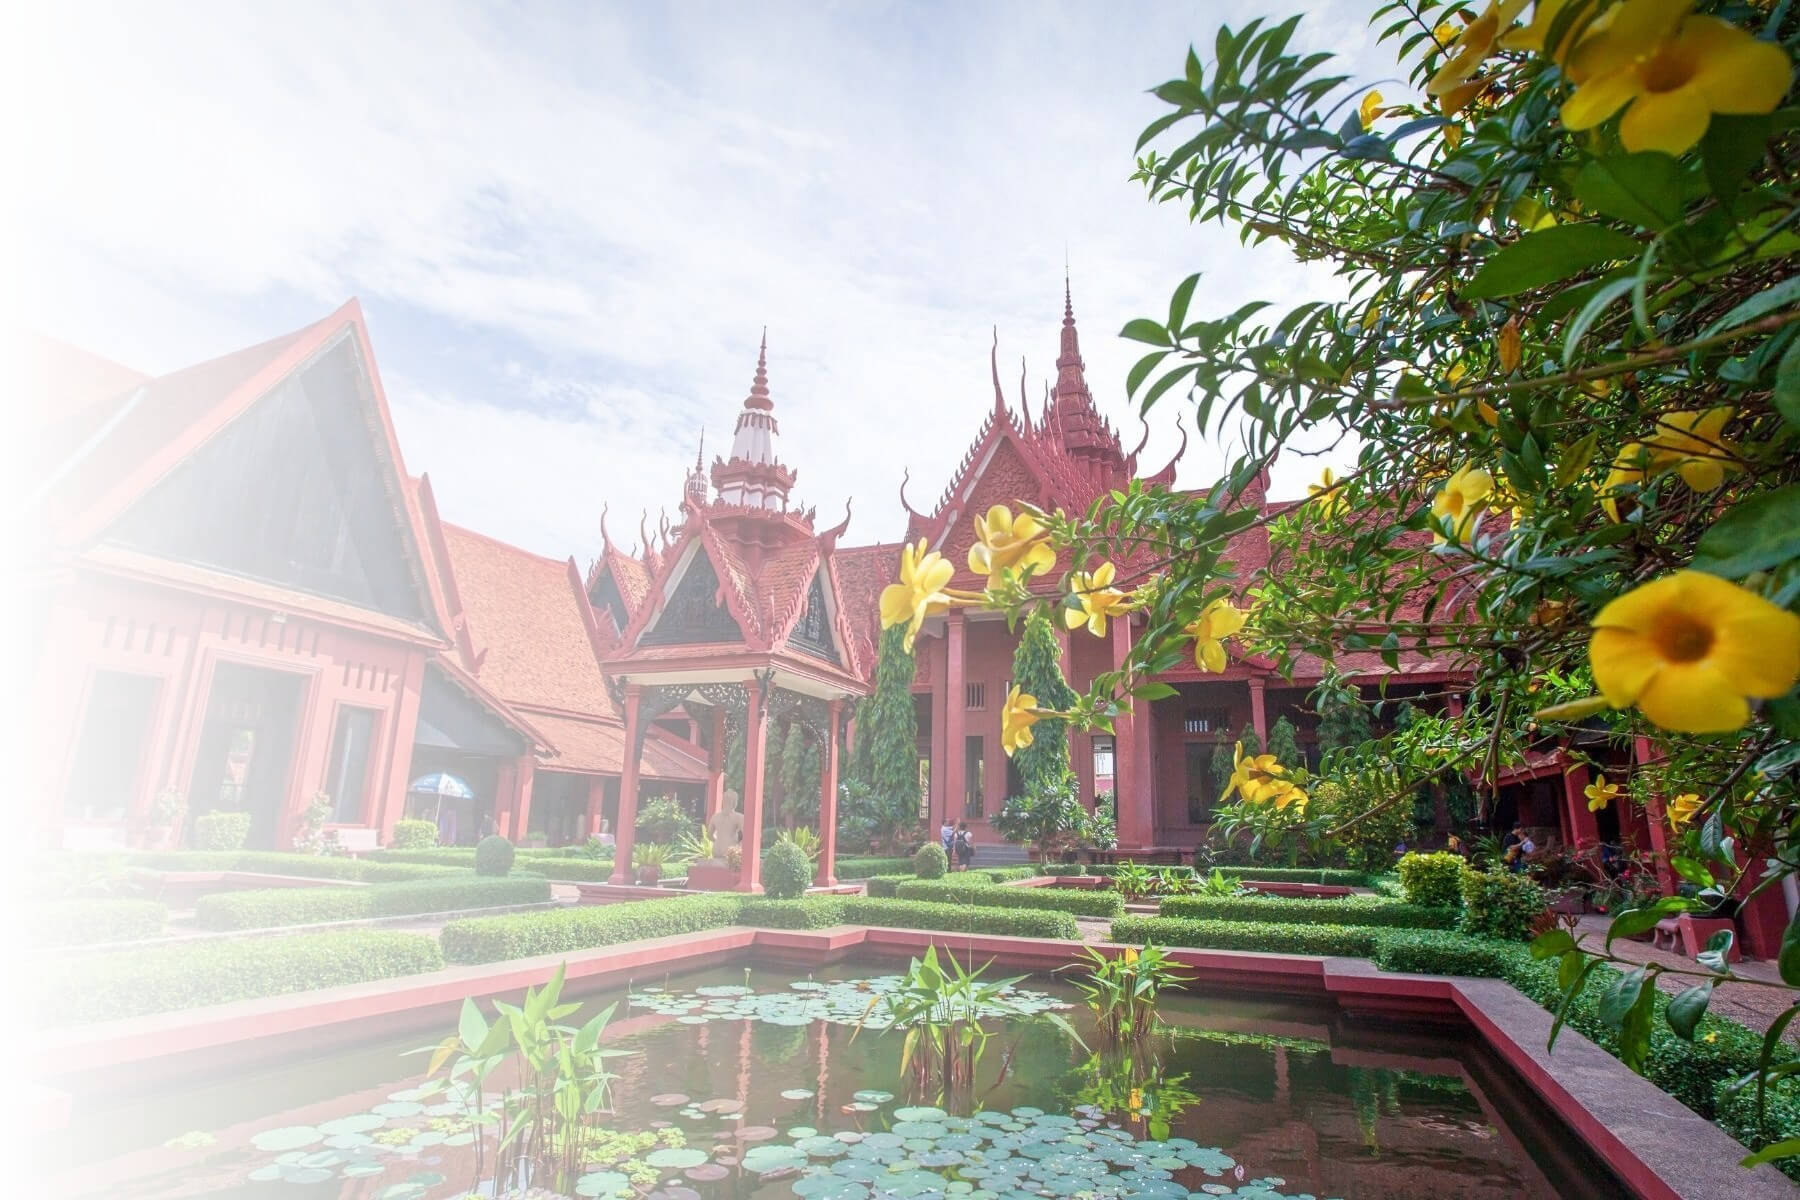 Phnom Penh garden and buildings